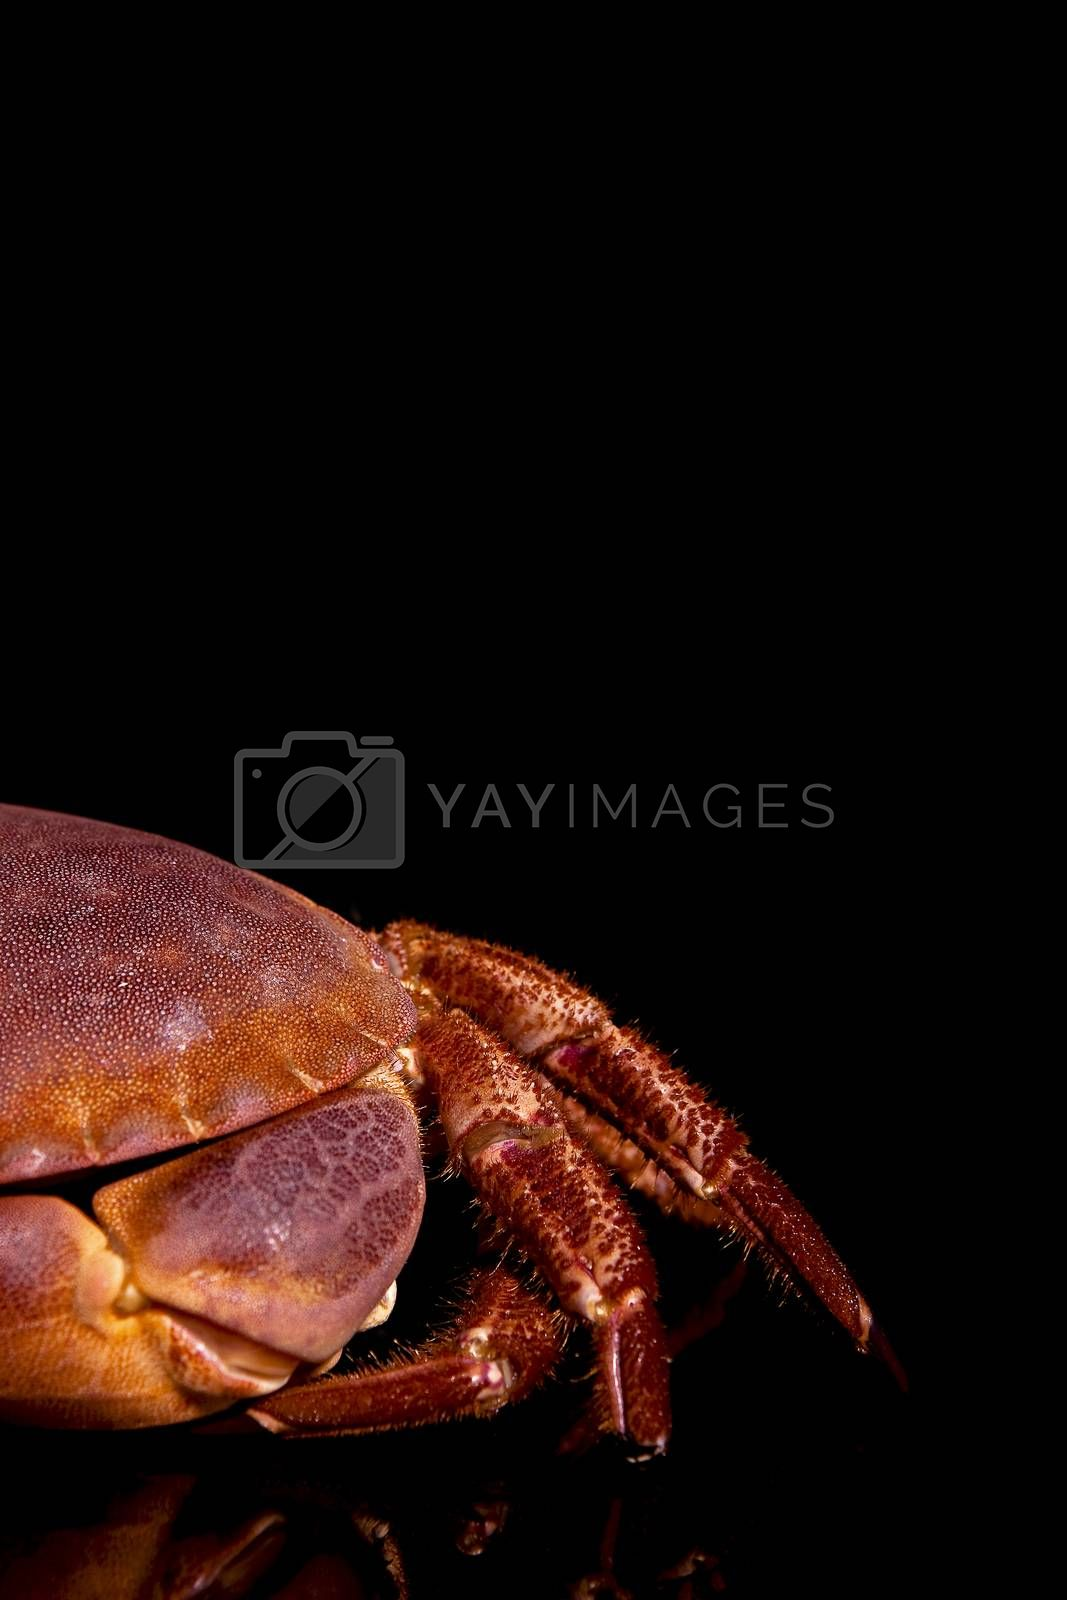 Seafood. Crab by eskymaks